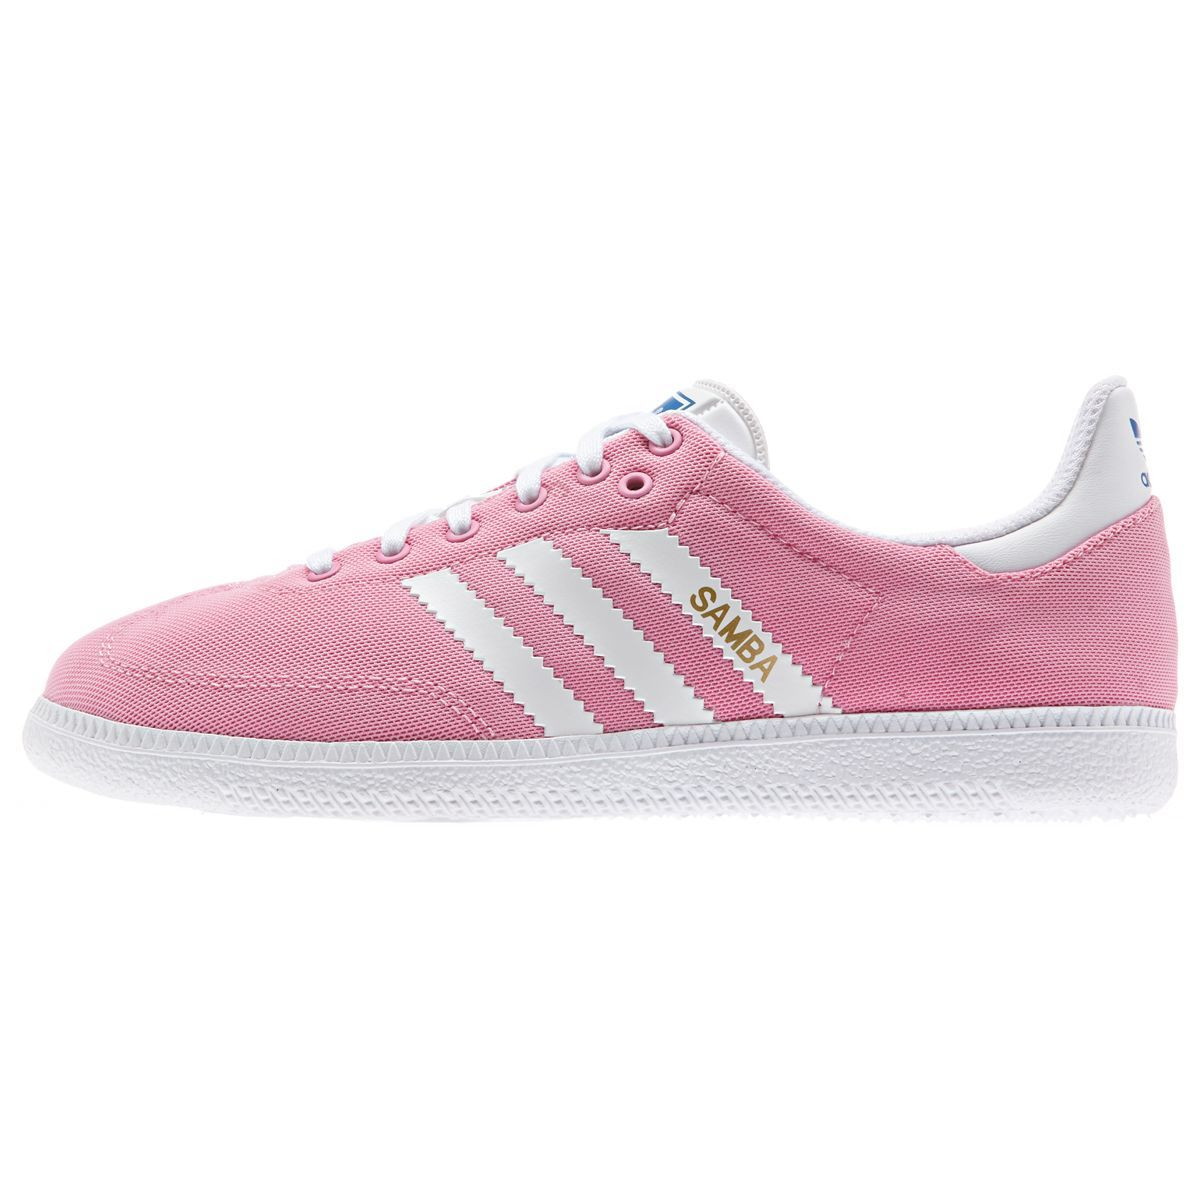 adidas samba light damen kinder m dchen schuhe sneakers. Black Bedroom Furniture Sets. Home Design Ideas